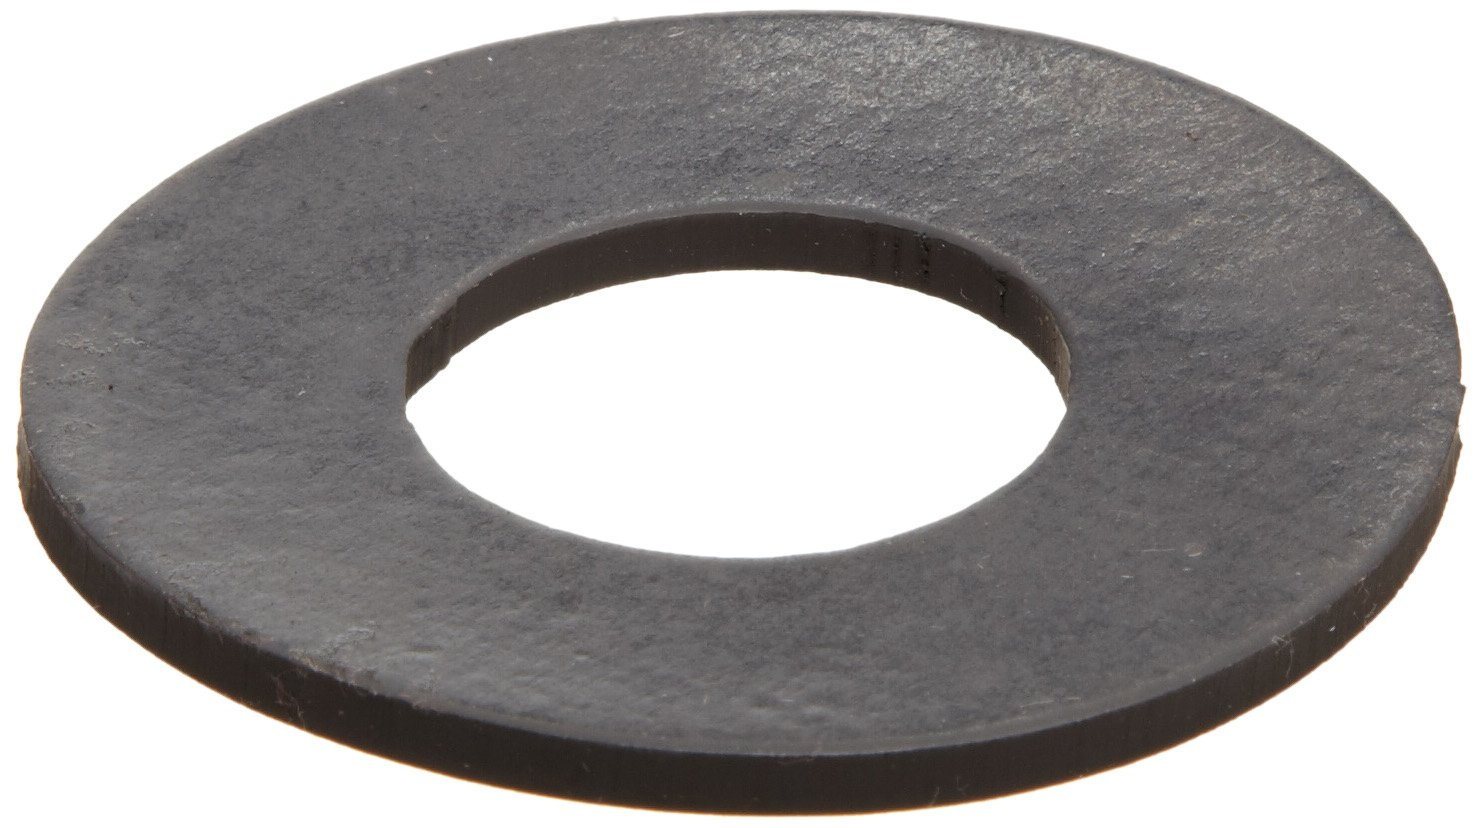 Ring Viton Fluoroelastomer Flange Gasket 1-29//32 ID Pack of 1 Fits Class 150 Flange 1-1//2 Pipe Size Black 3-3//8 OD 1//8 Thick